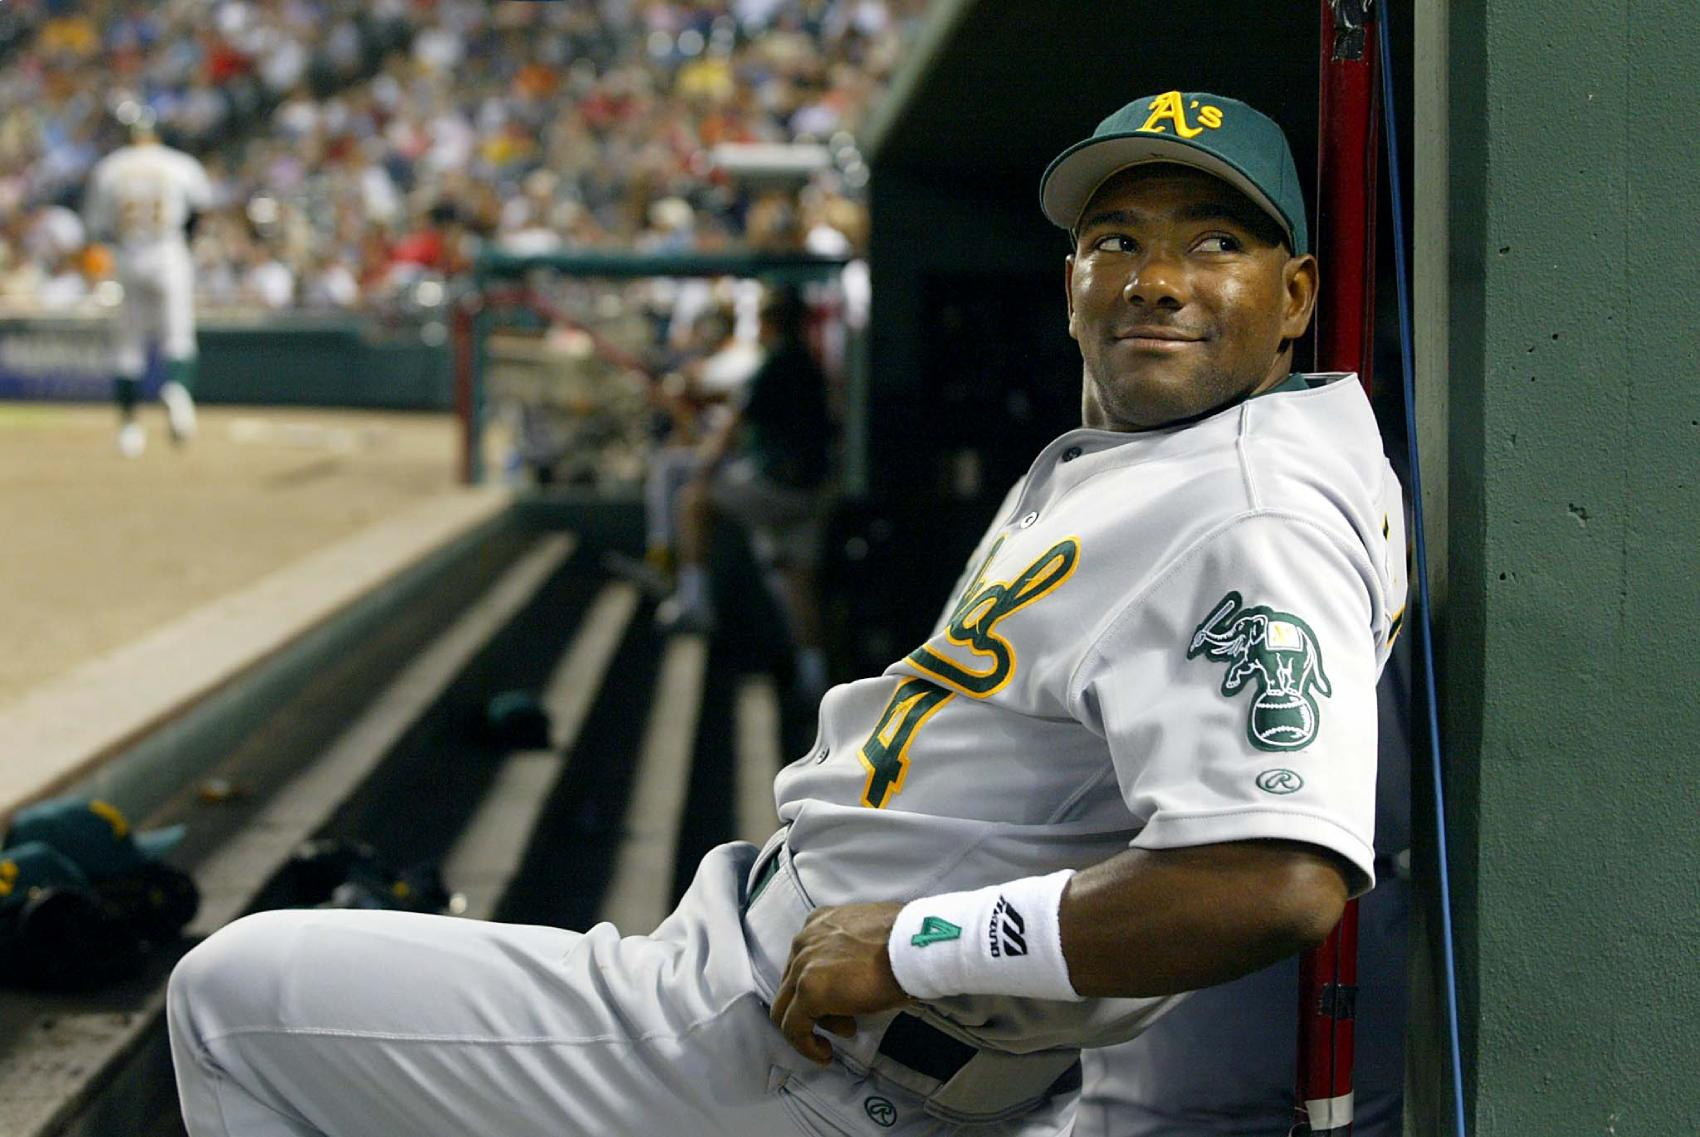 MLB All-Star Miguel Tejada became a chicken farmer in retirement and reportedly filed for bankruptcy in 2015.